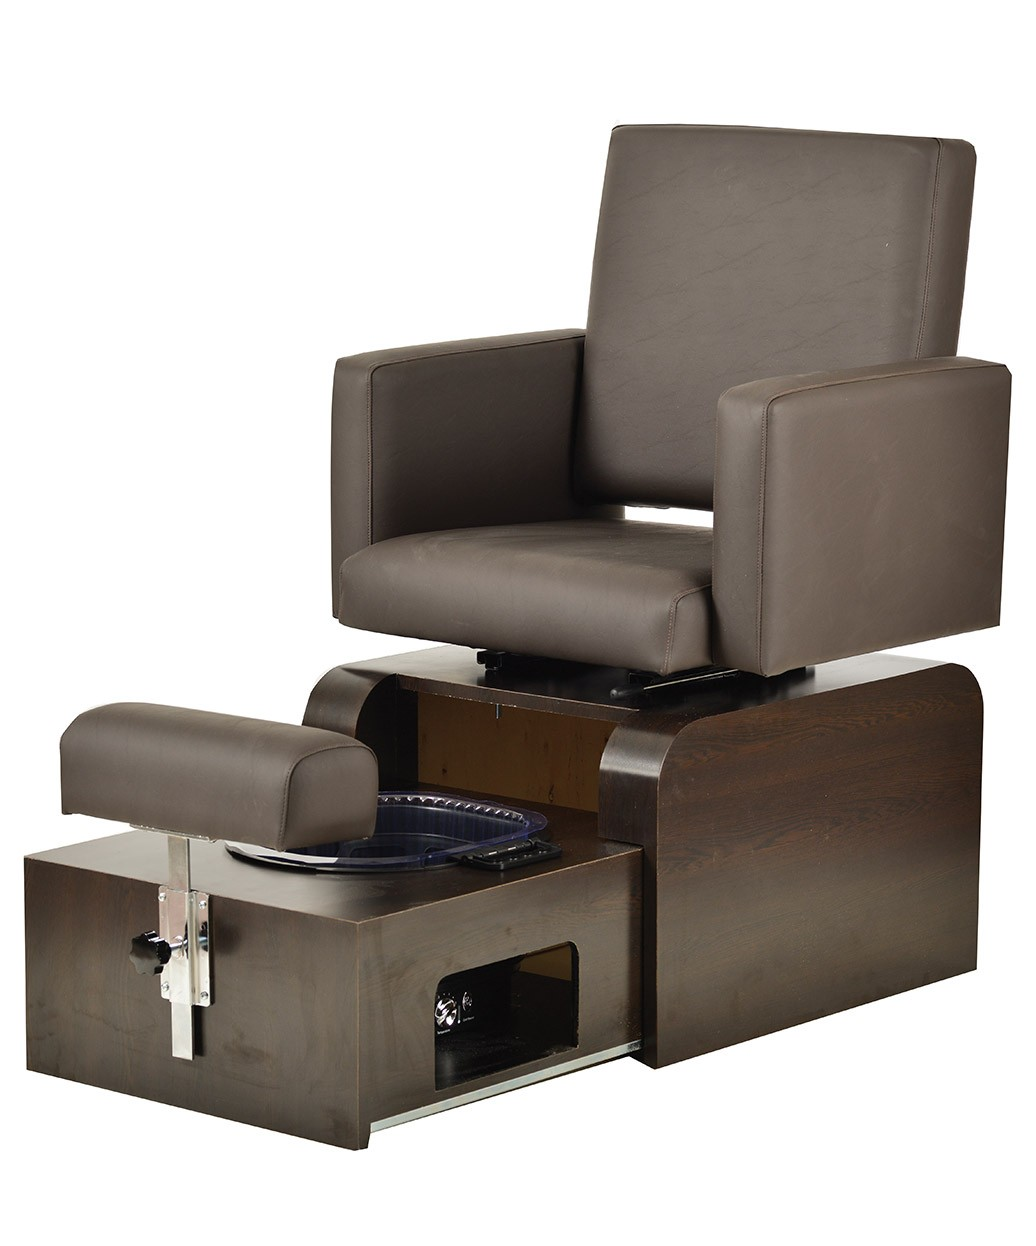 pedicure chairs used kitchen table with rolling pibbs ps10 san remo footsie spa